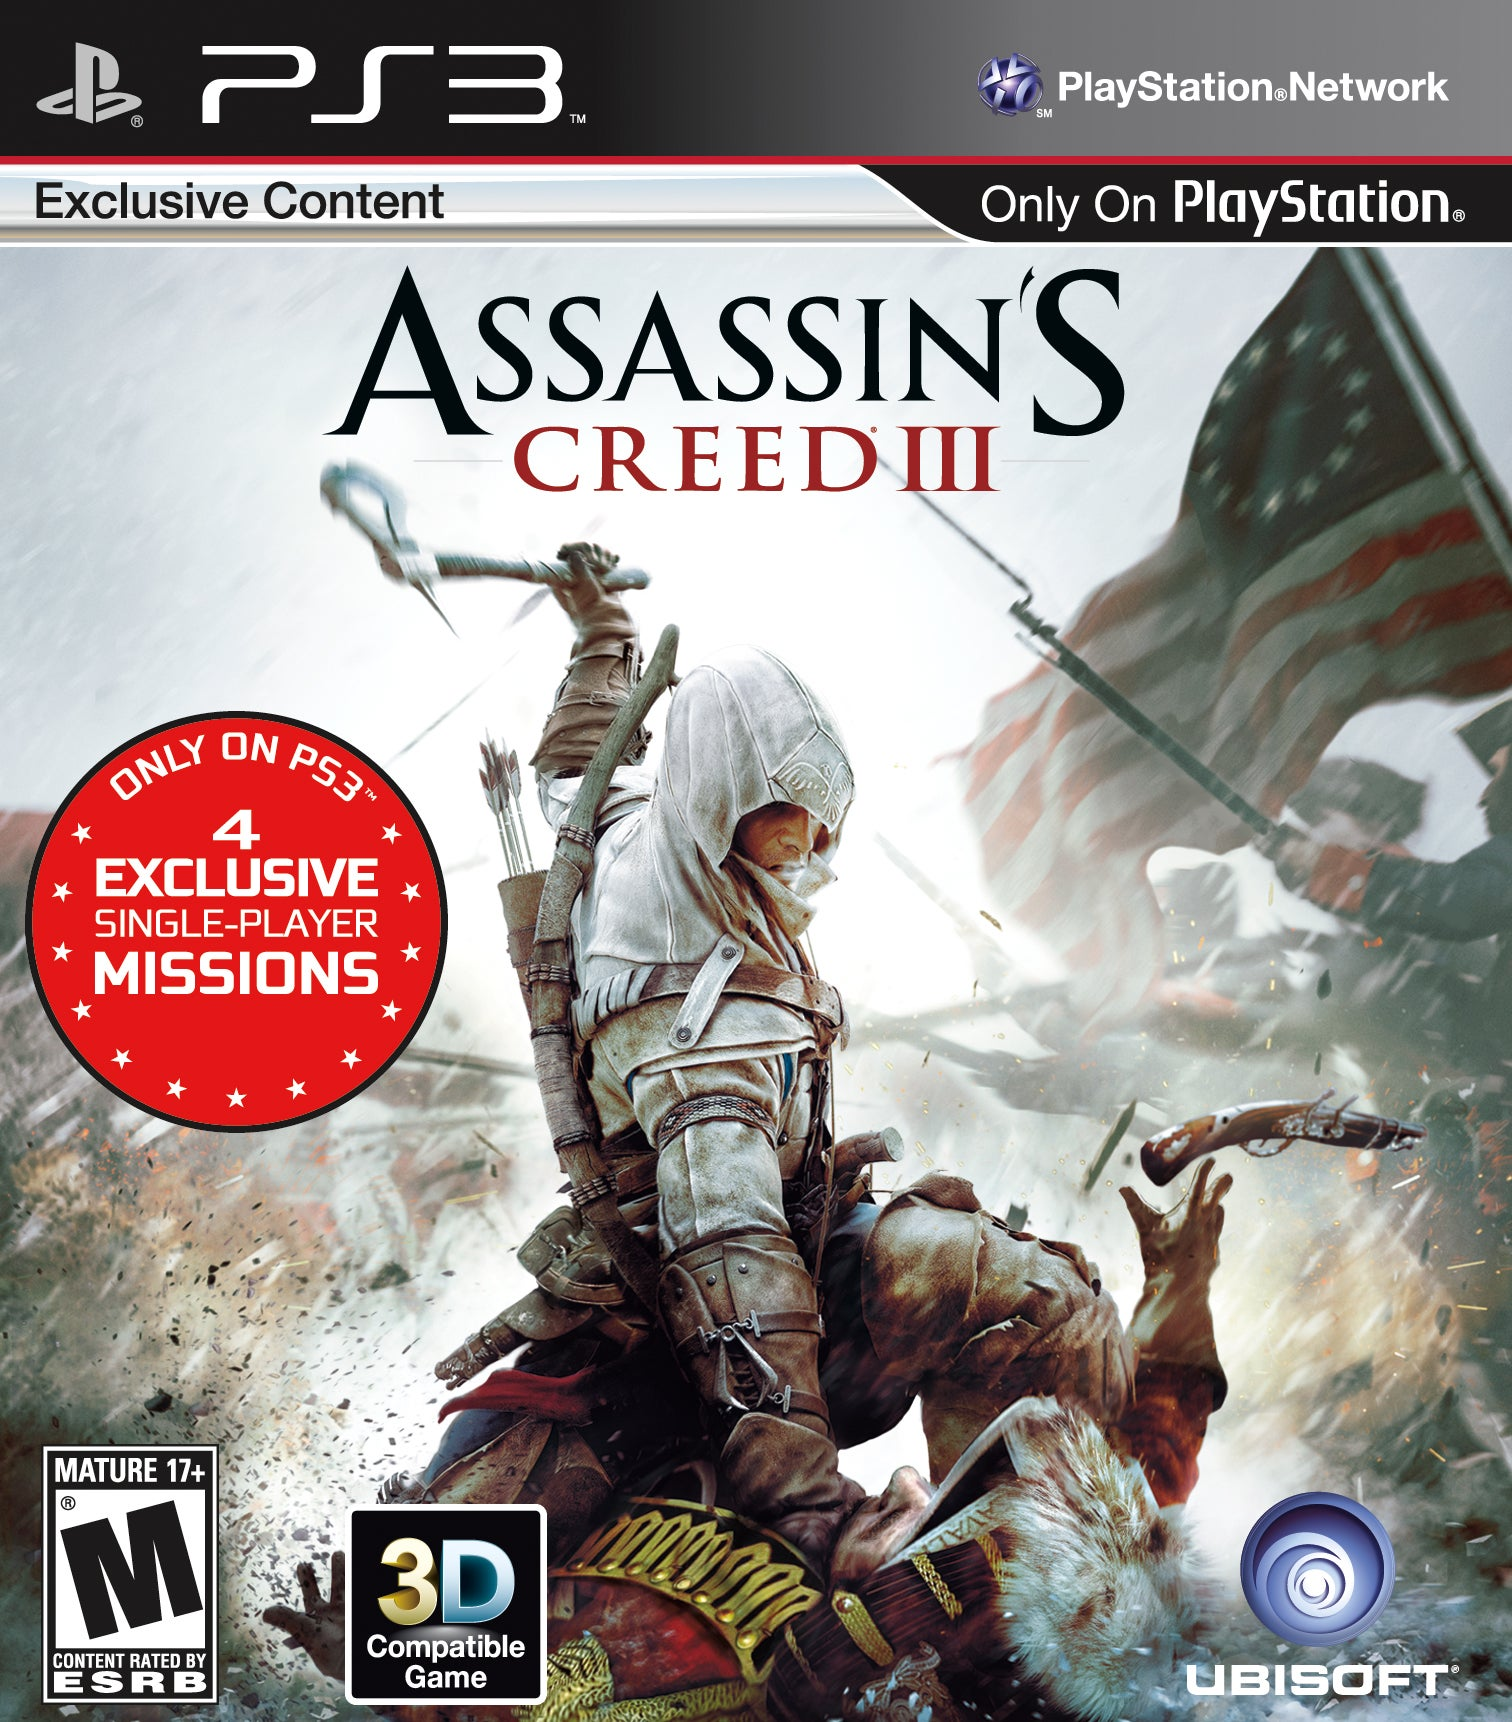 Assassins Creed III Review IGN